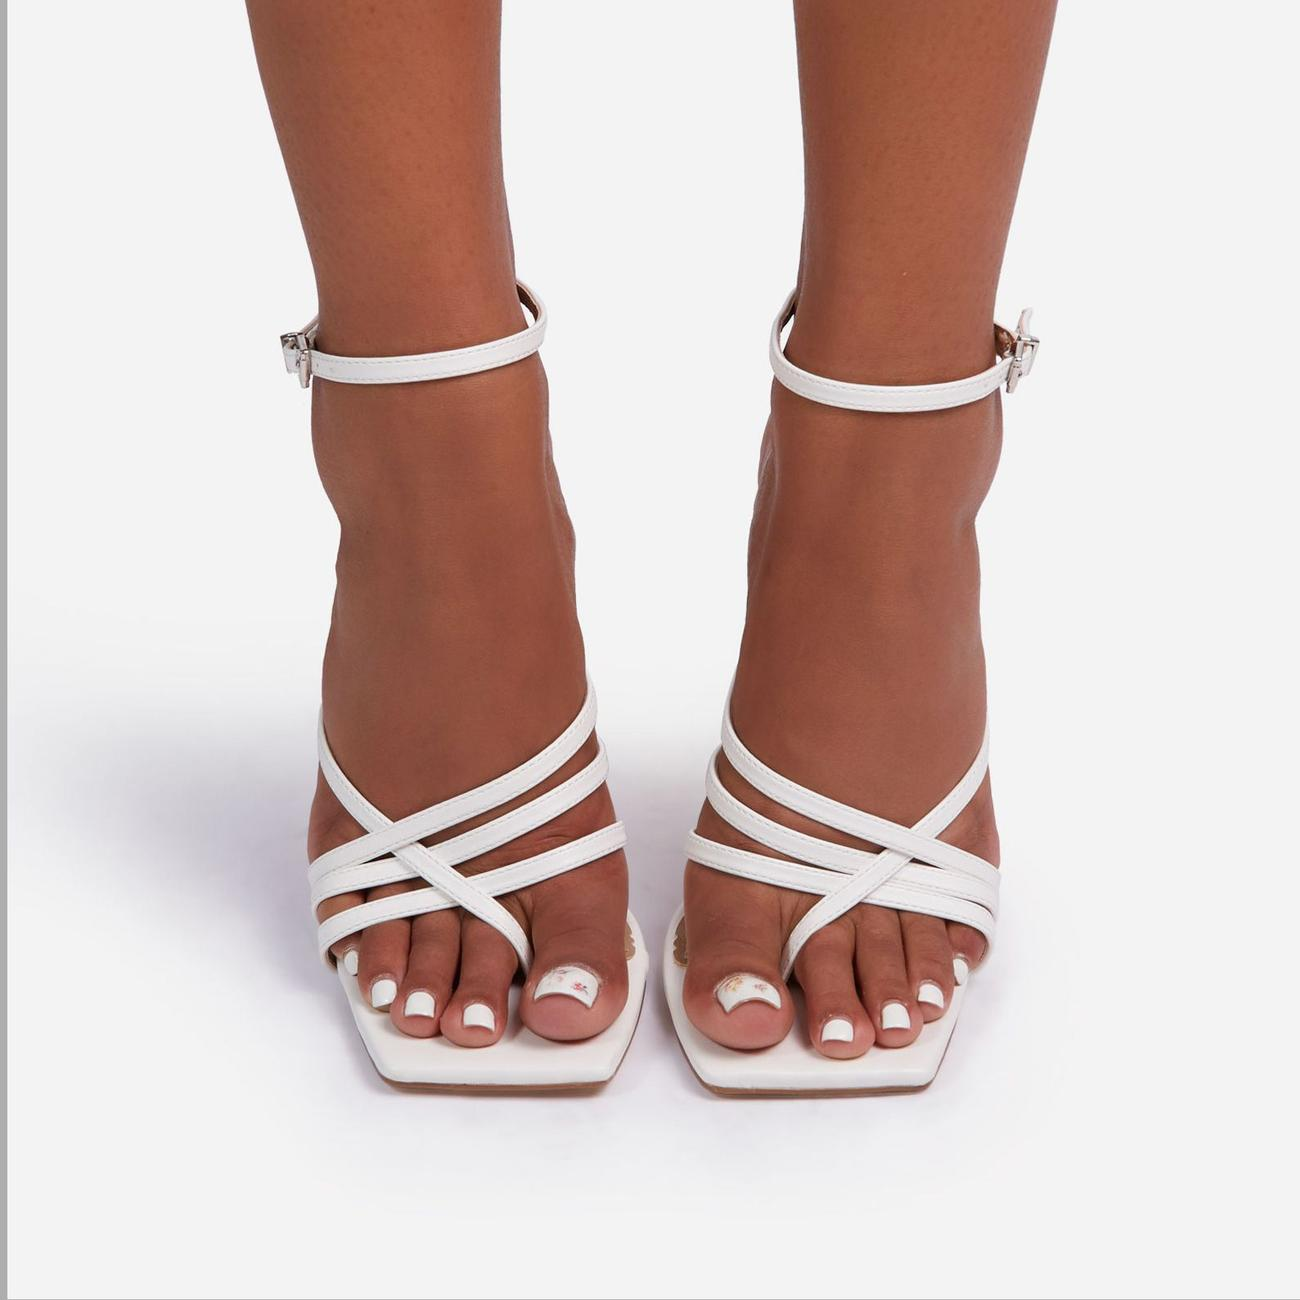 Rayon Strappy Square Toe Clear Perspex Heel In White Faux Leather Image 4